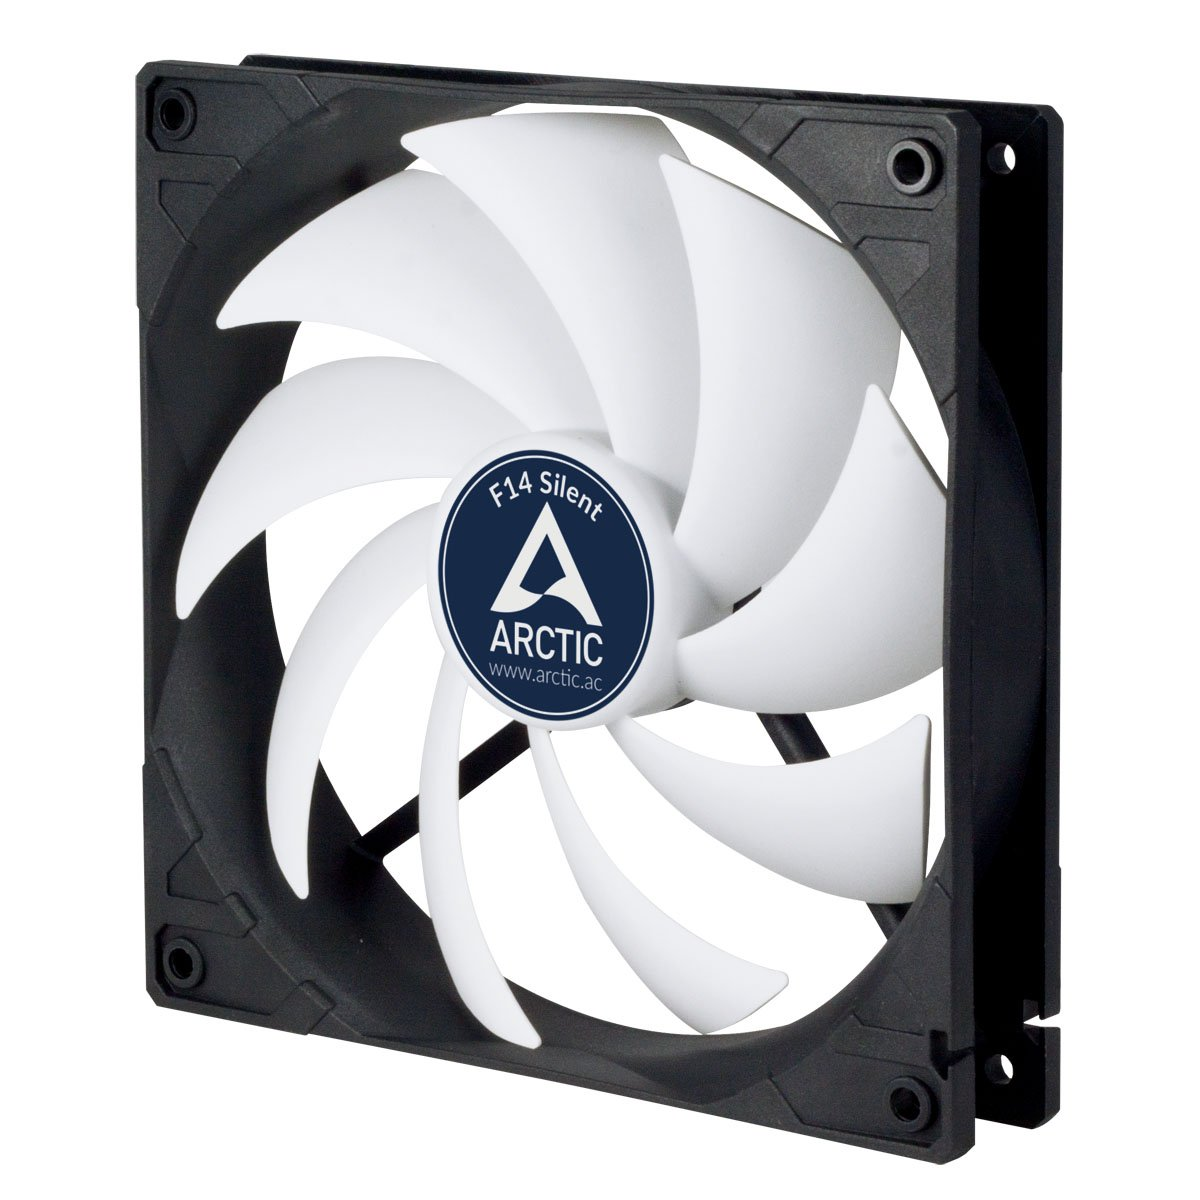 ARCTIC F14 Silent, Ultra Quiet 140 mm Case Fan, Virtually Silent Fan at 0.08 Sone, 3 –Pin Fan with Standard Case for Quiet and Efficient Ventilation